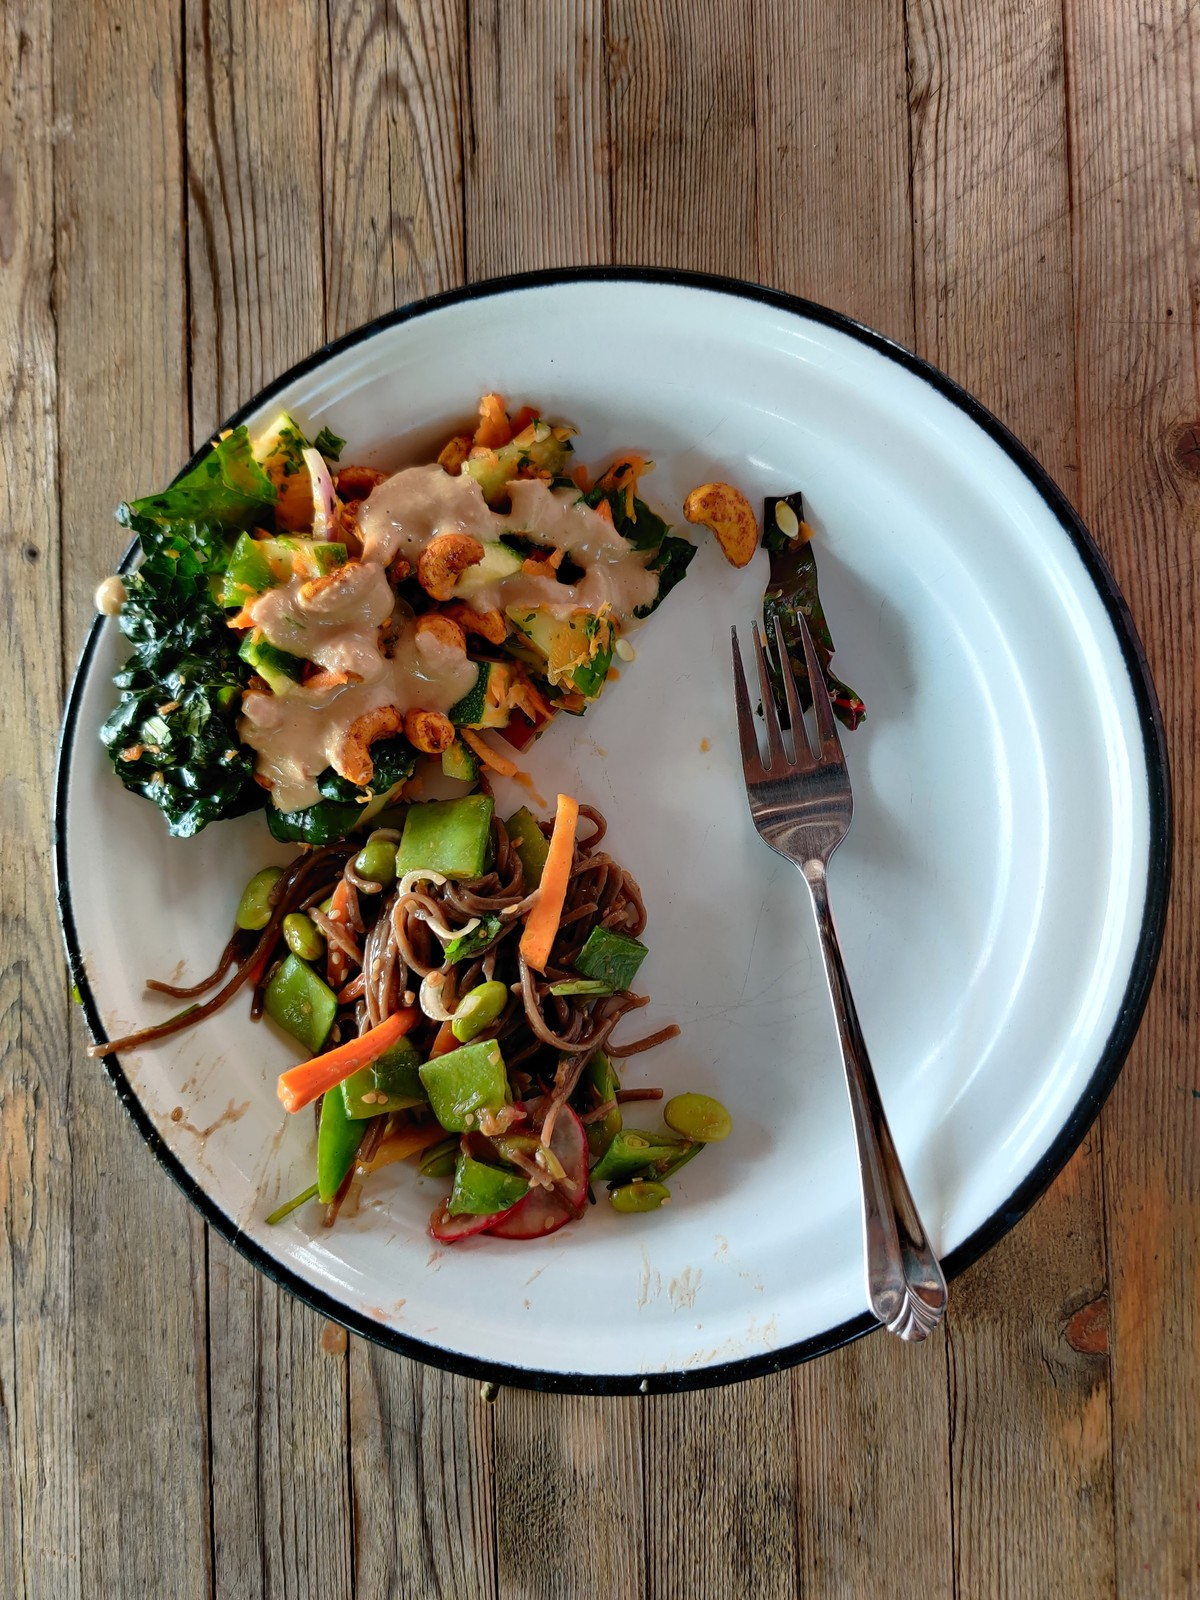 curry cashew and carrot salad and soba noodle salad with ginger soy sauce on a plate.